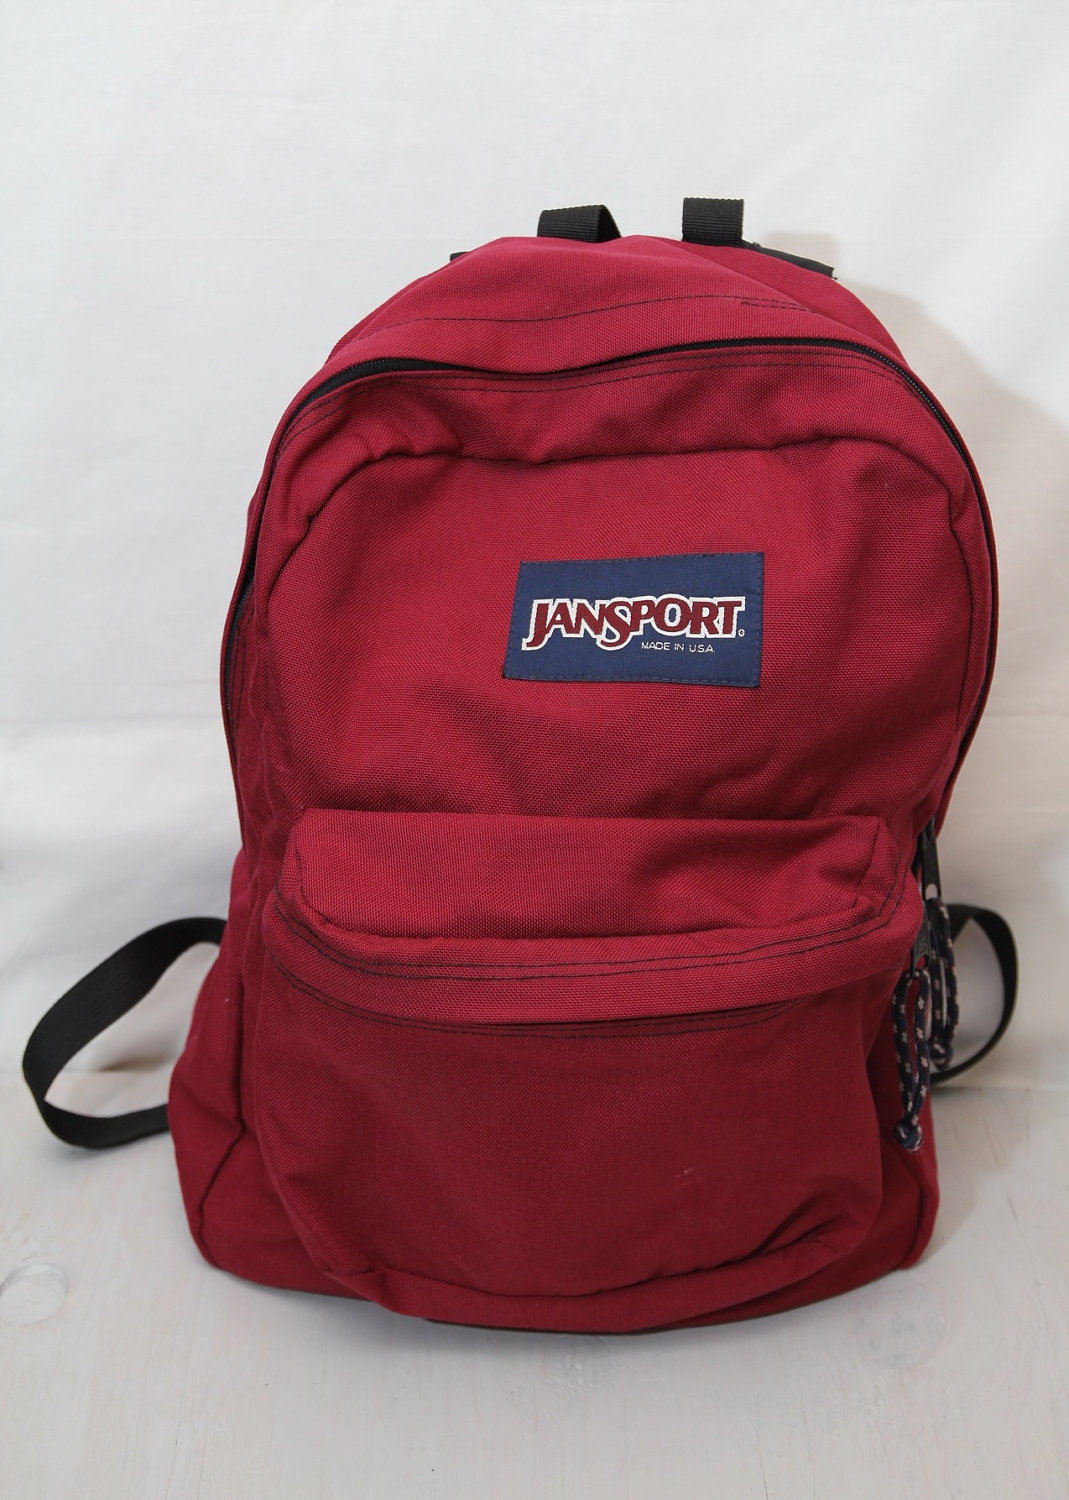 Jansport Red Backpack 3vOM5nTN